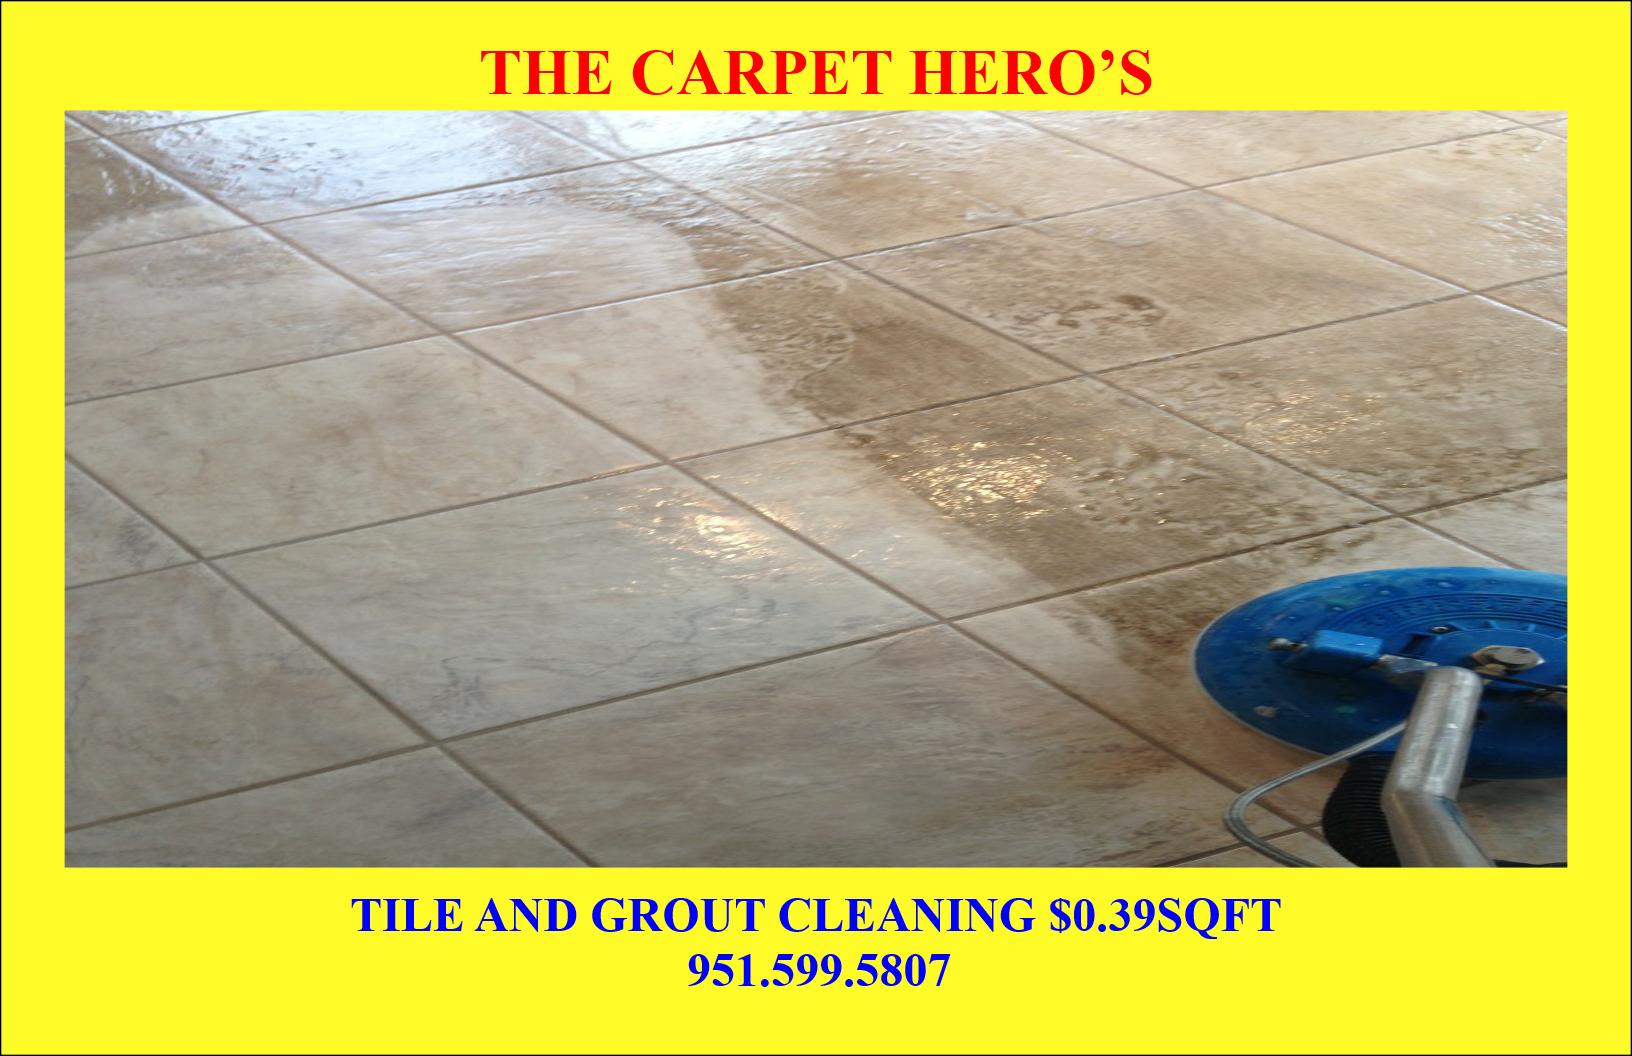 Tile and Grout Cleaning in Murrieta